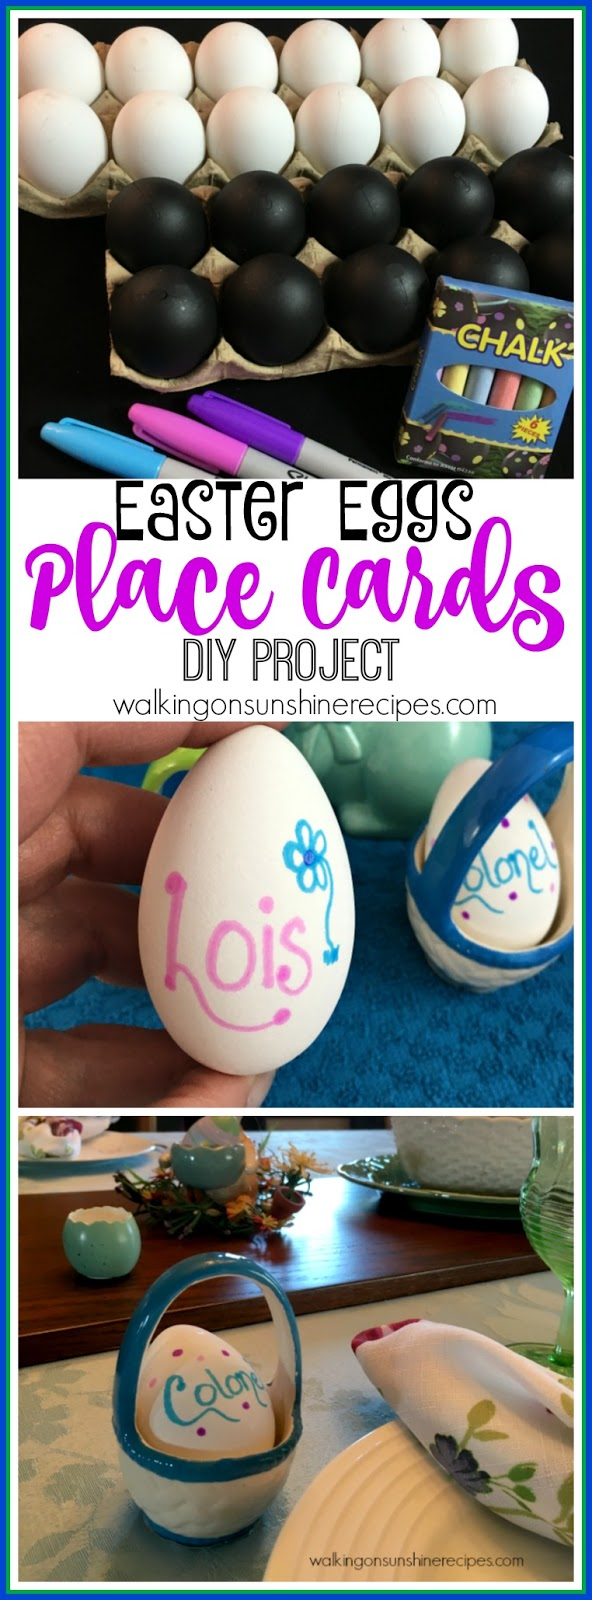 How to make Easter Eggs Place Cards DIY Project - Thursday's Tip from Walking on Sunshine Recipes.